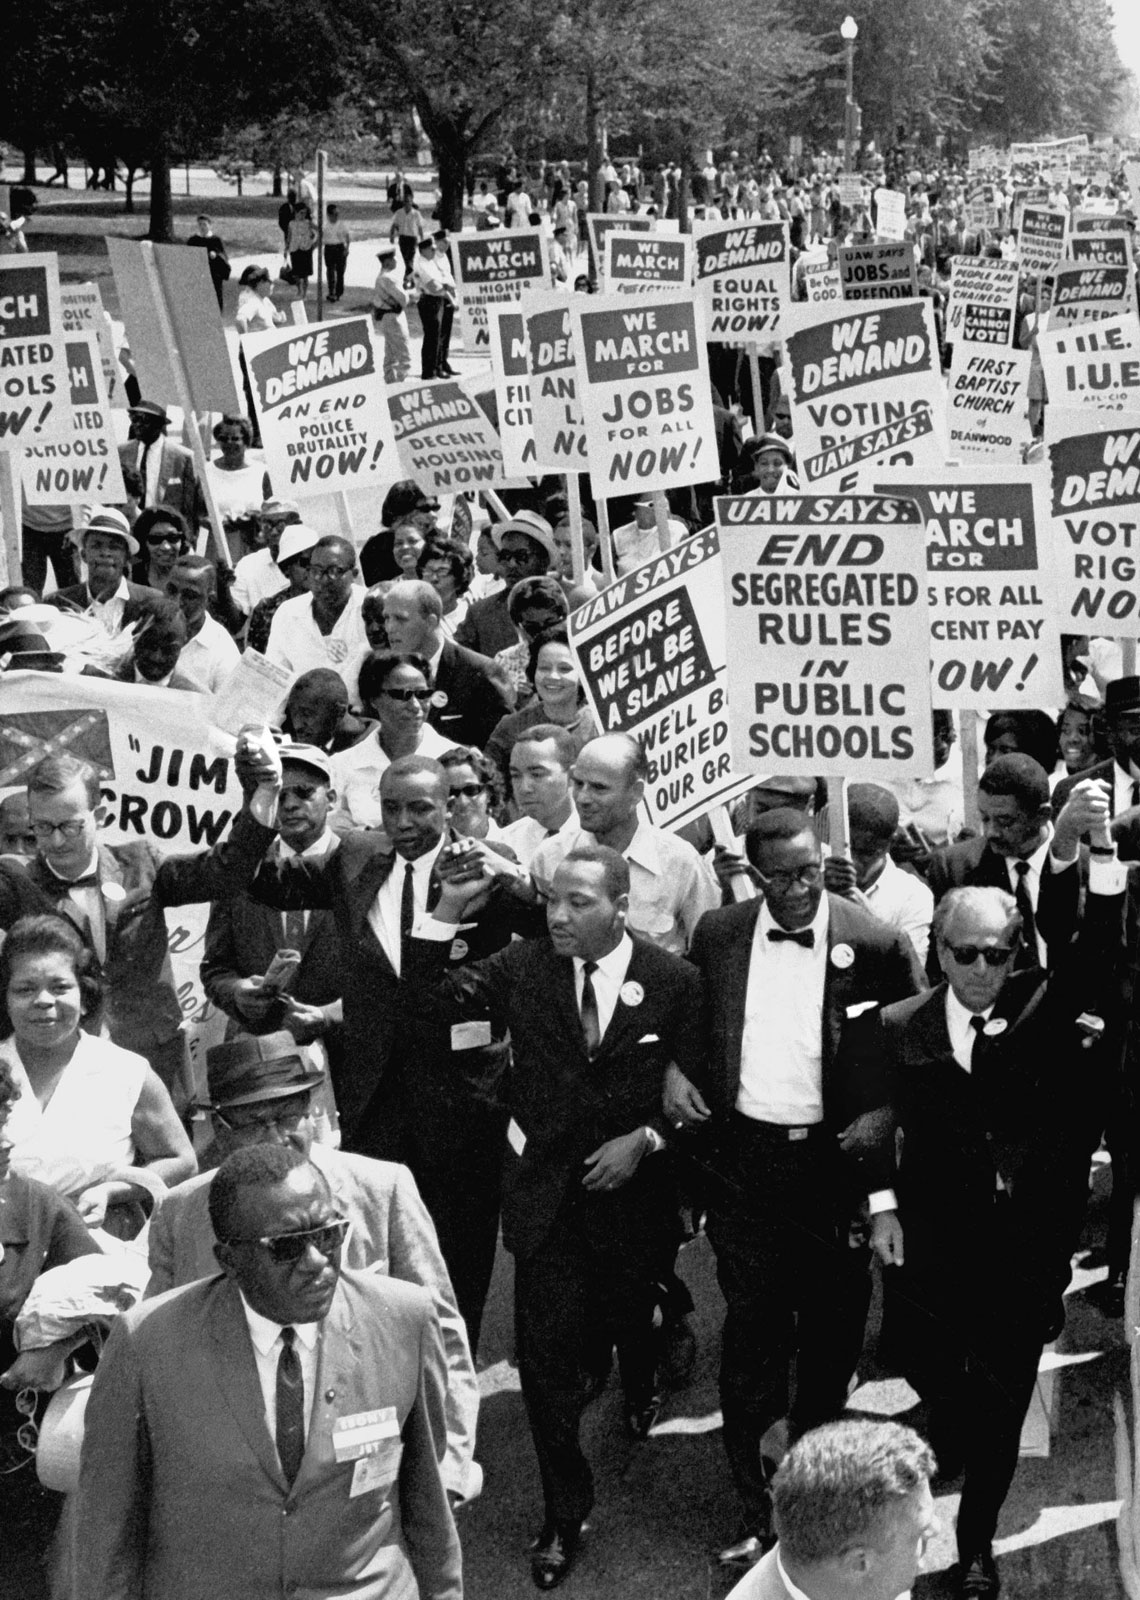 Martin Luther King Jr civil rights supporters August 19631